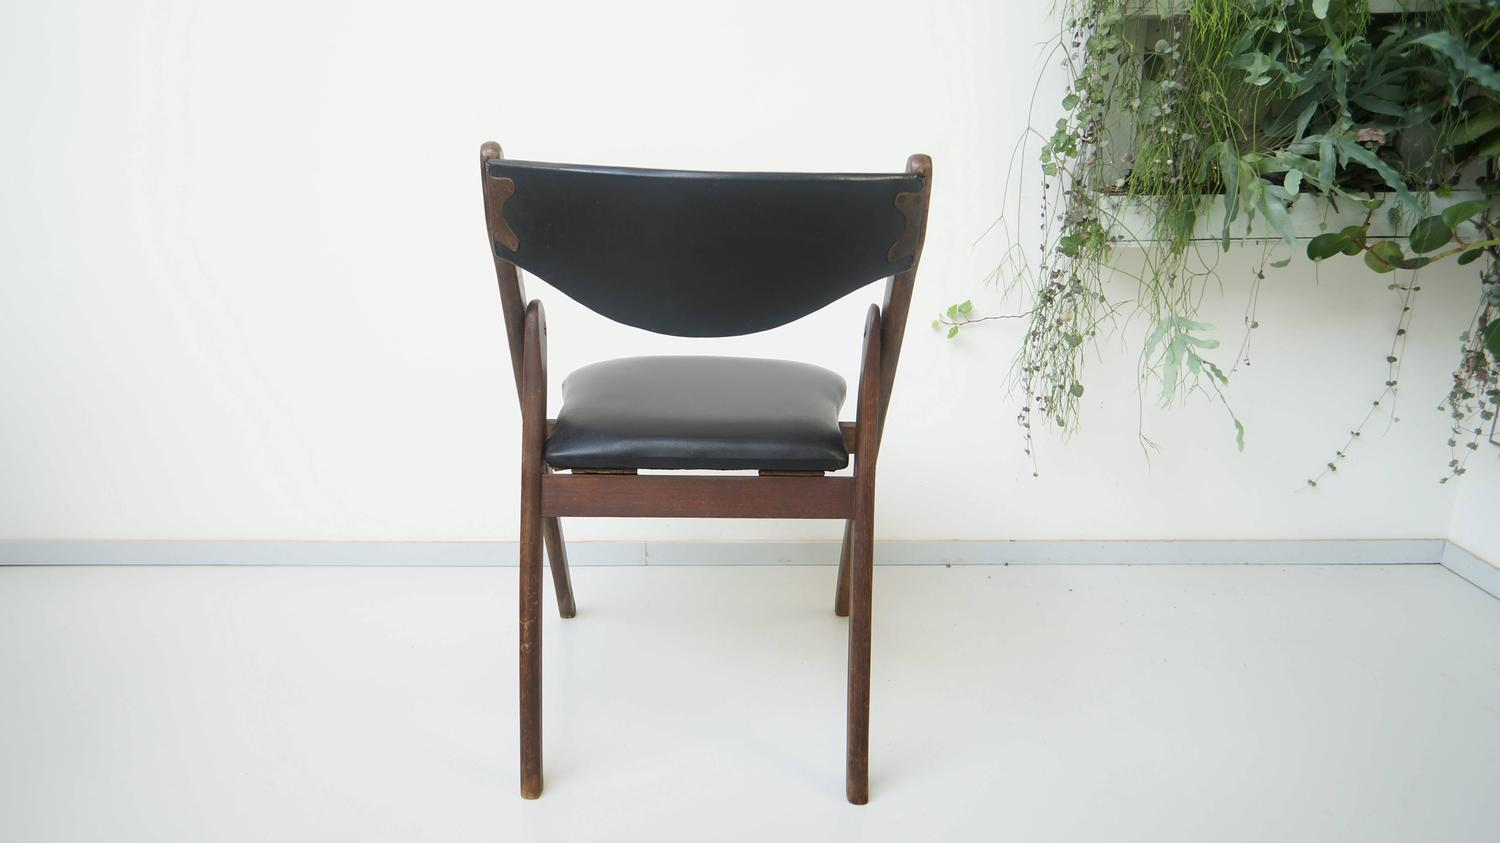 modern folding chair amish 3 in 1 high plans mid century allan gould 1950s at